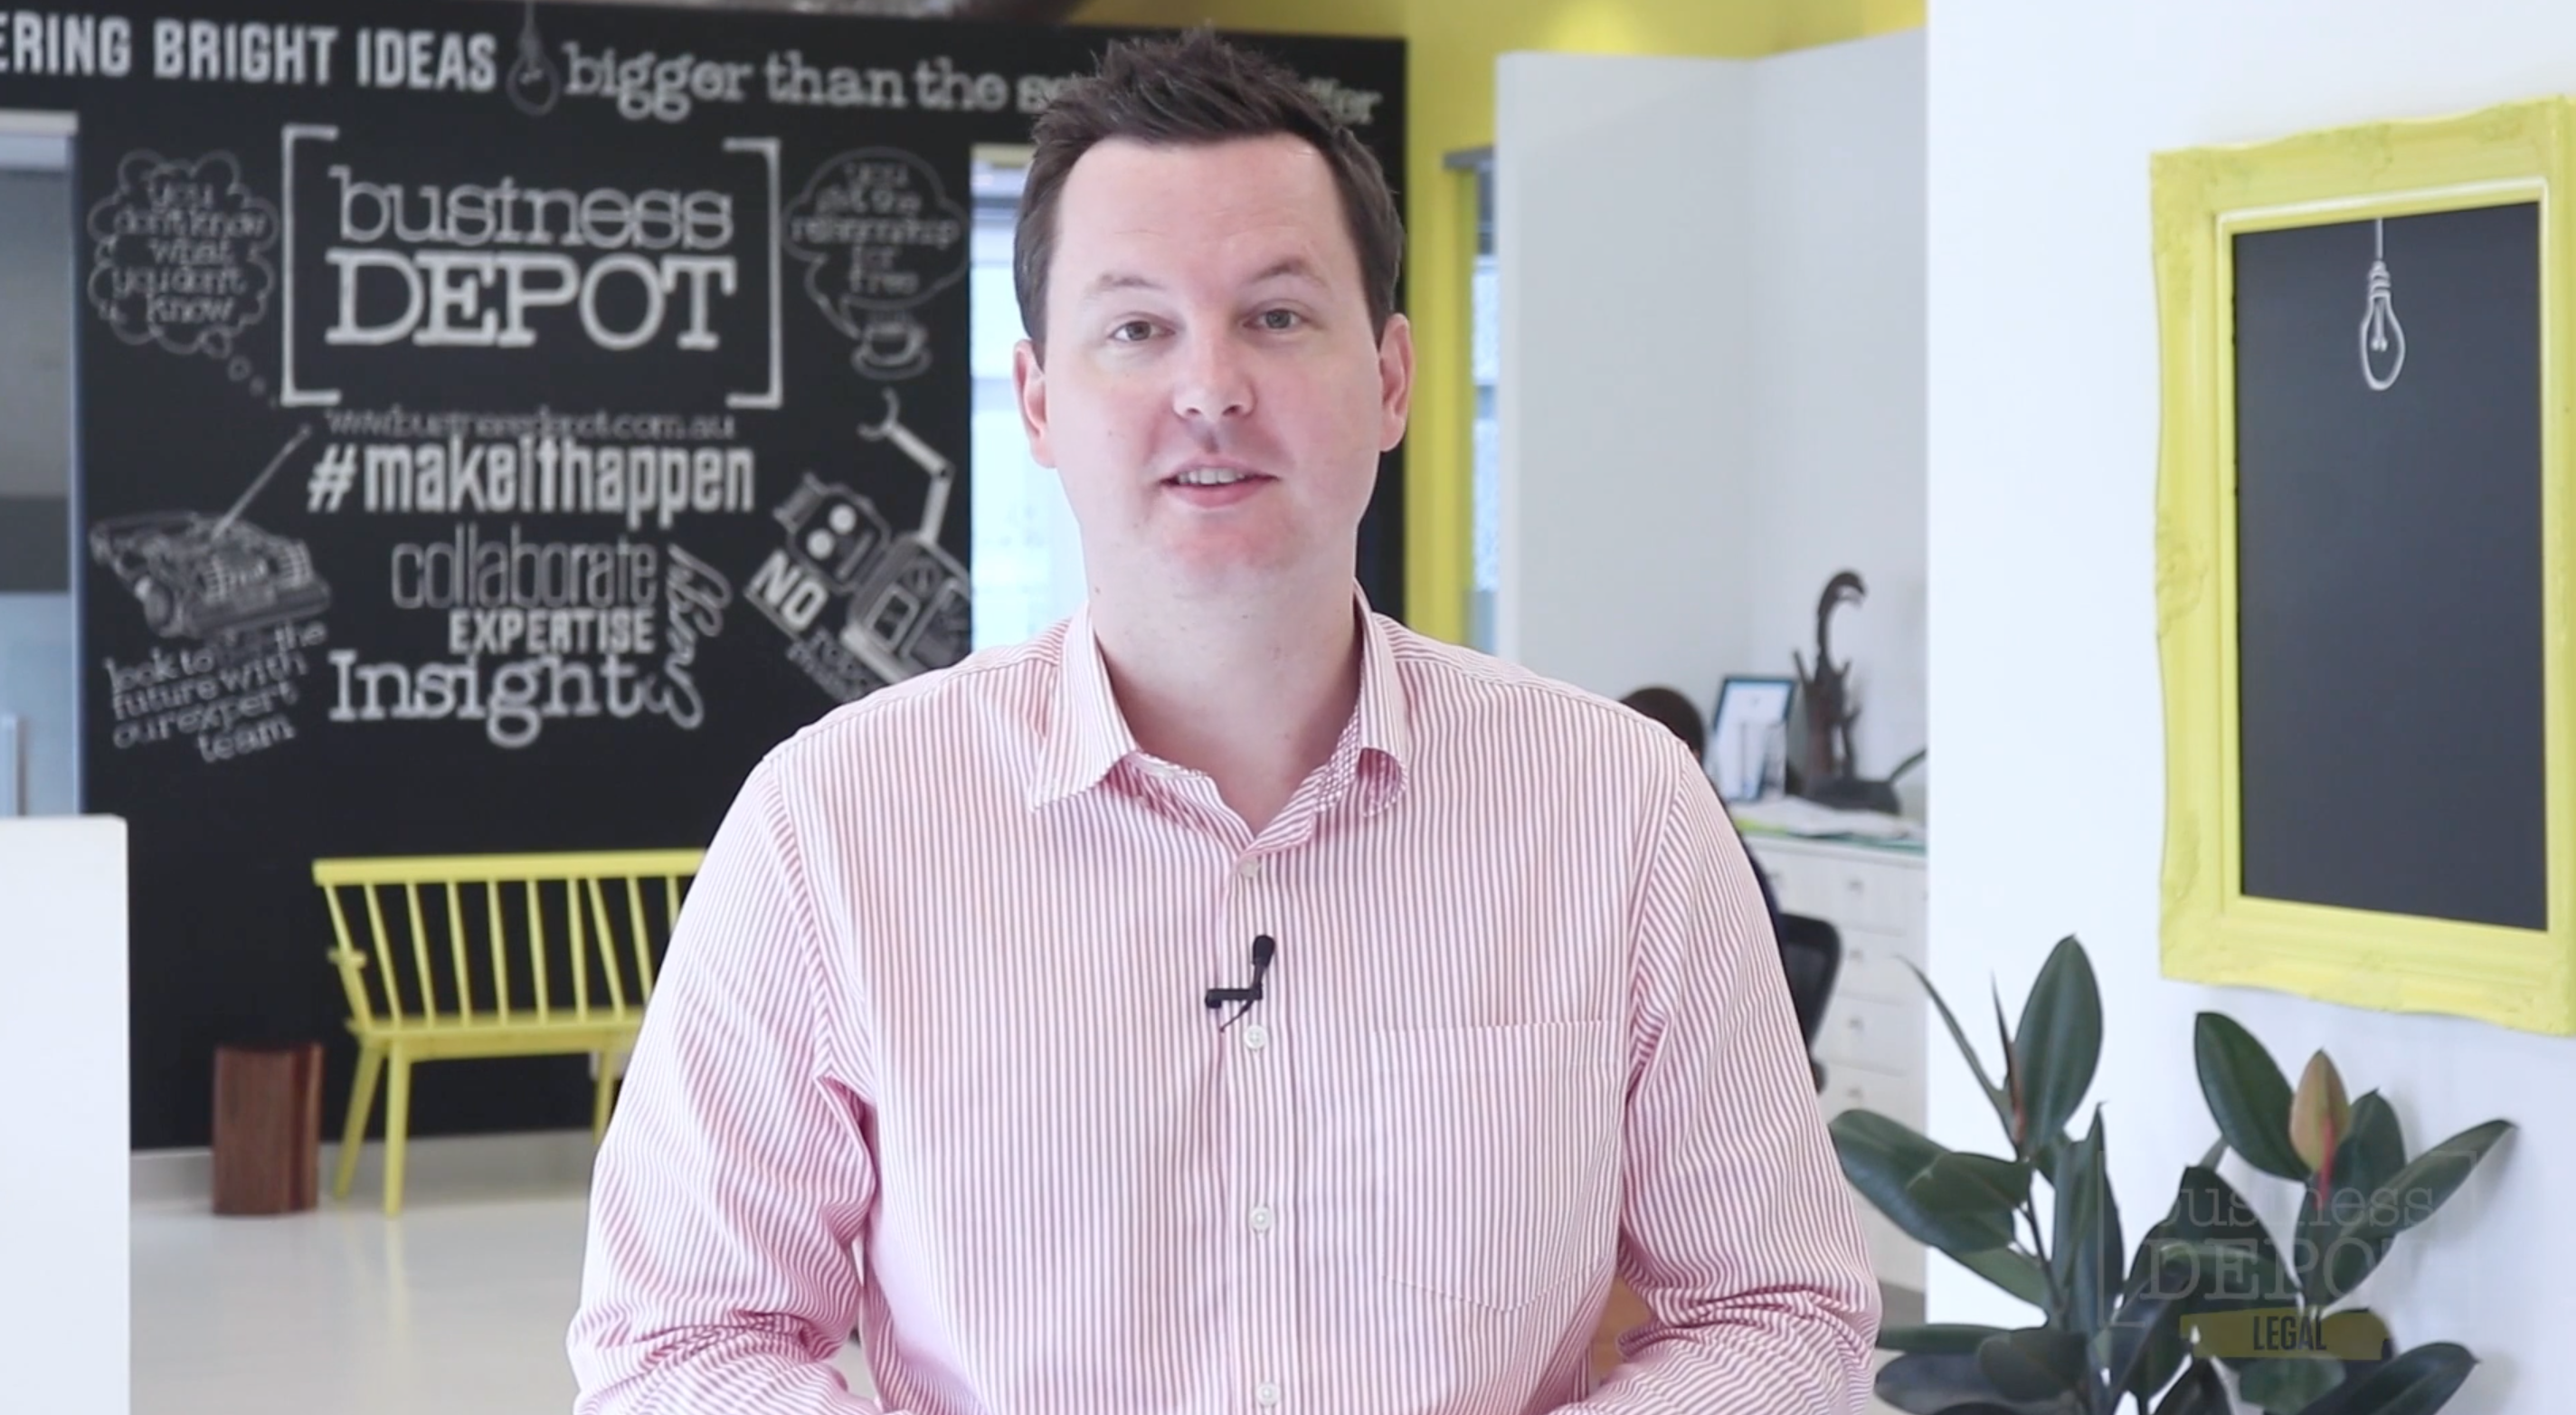 A frame from one of the professionally looking businessDEPOT videos.